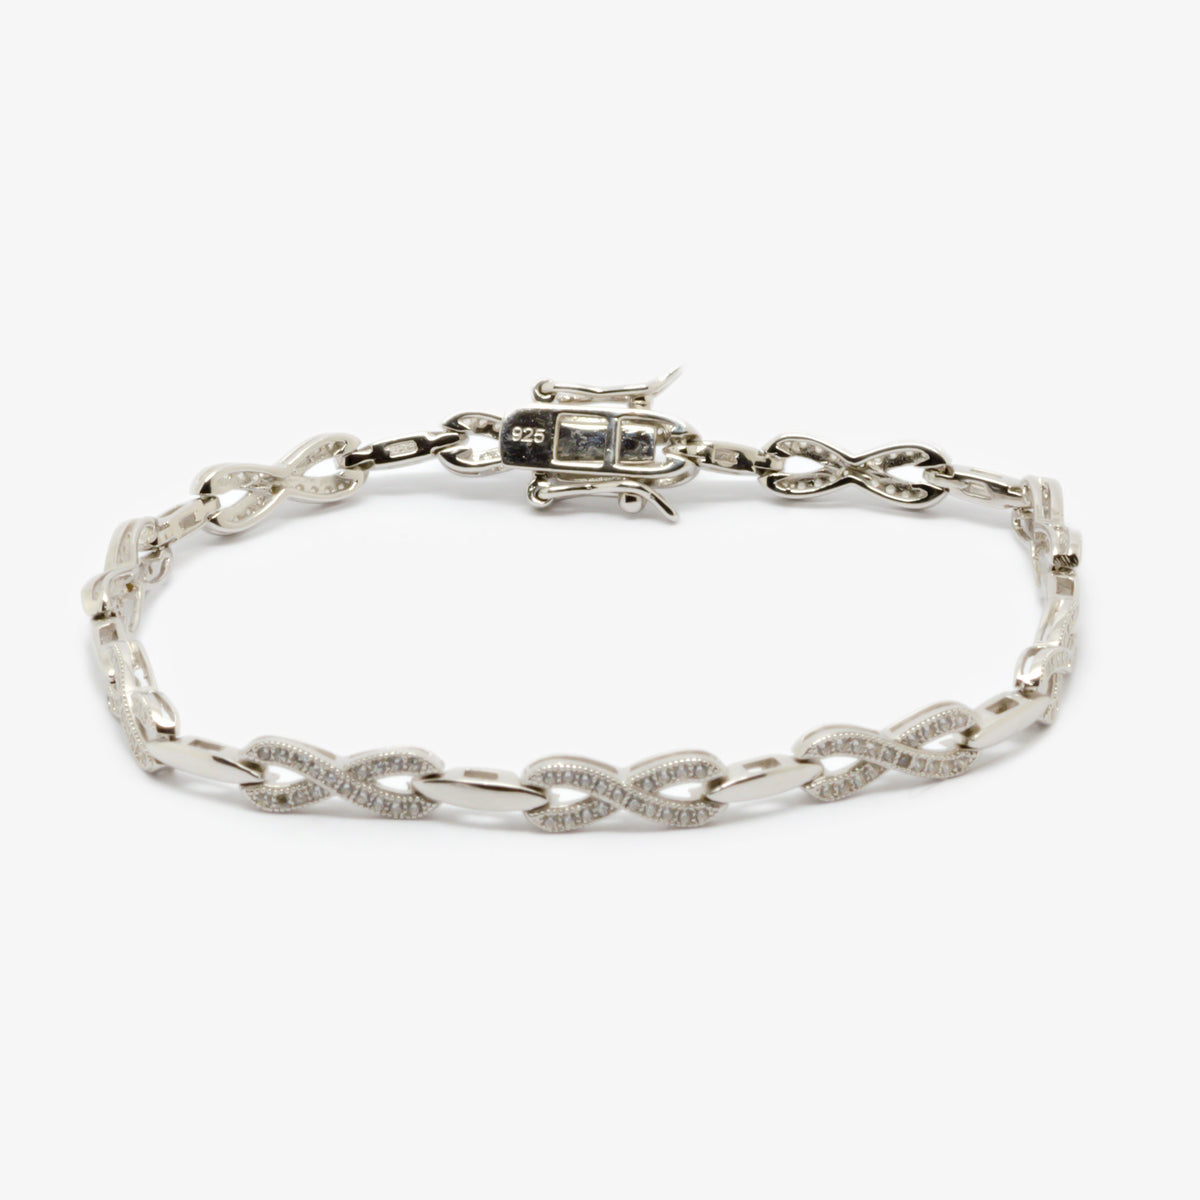 Picture of the silver crystal bracelet.